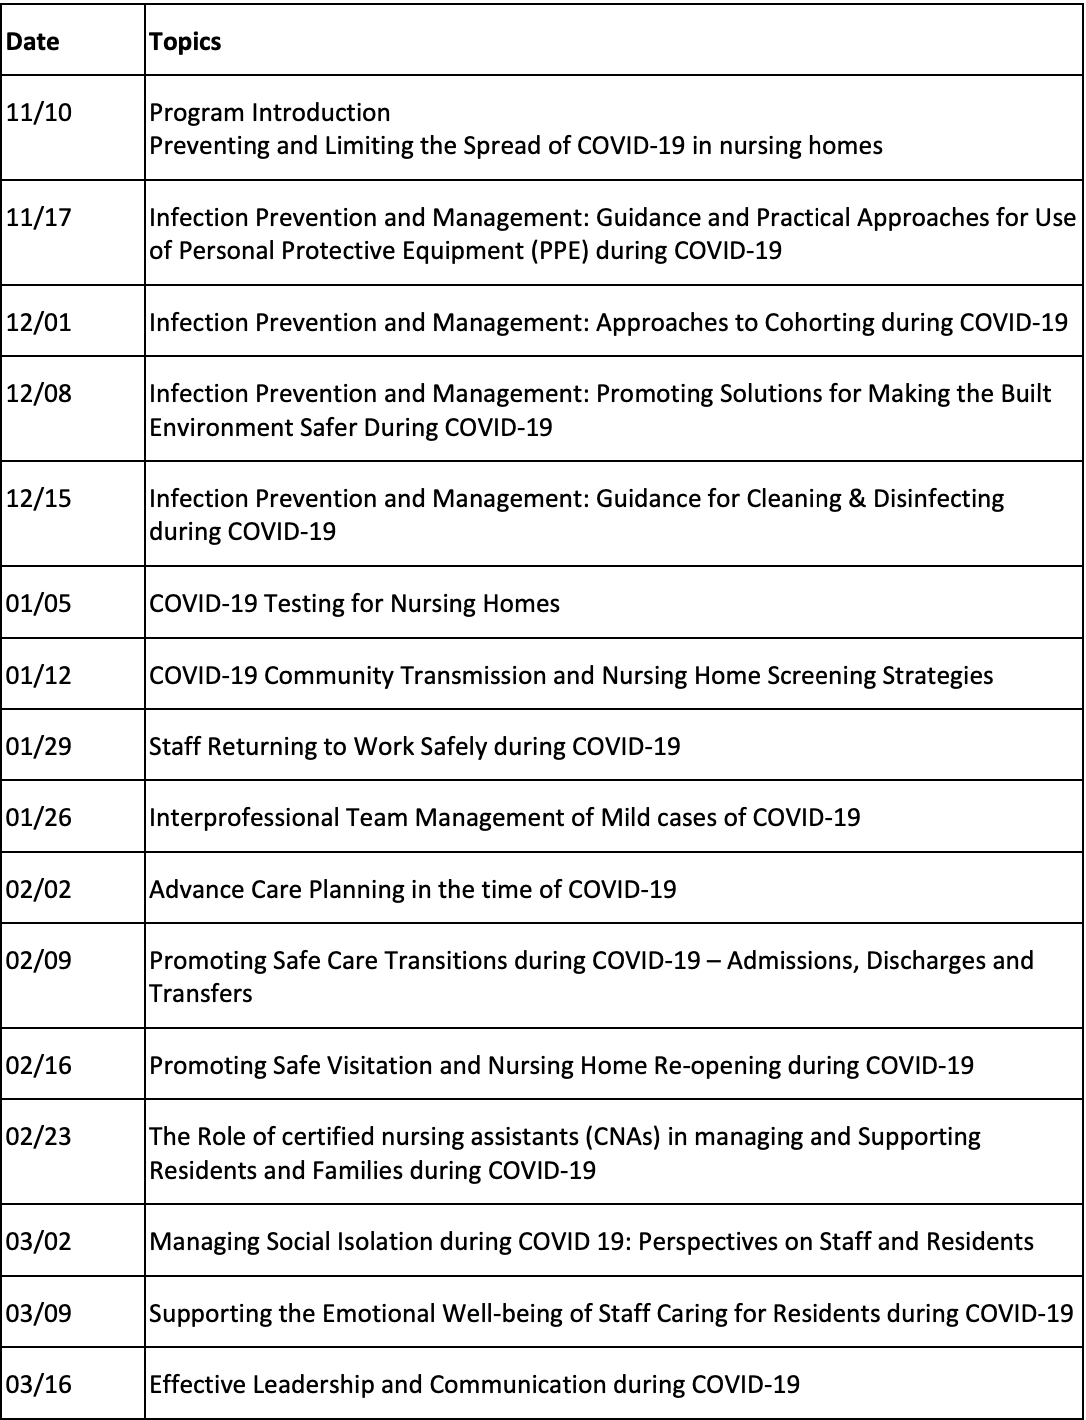 ECHO-Chicago: Nursing Home COVID-19 Action Network (Nov. 10 Cohort) Agenda